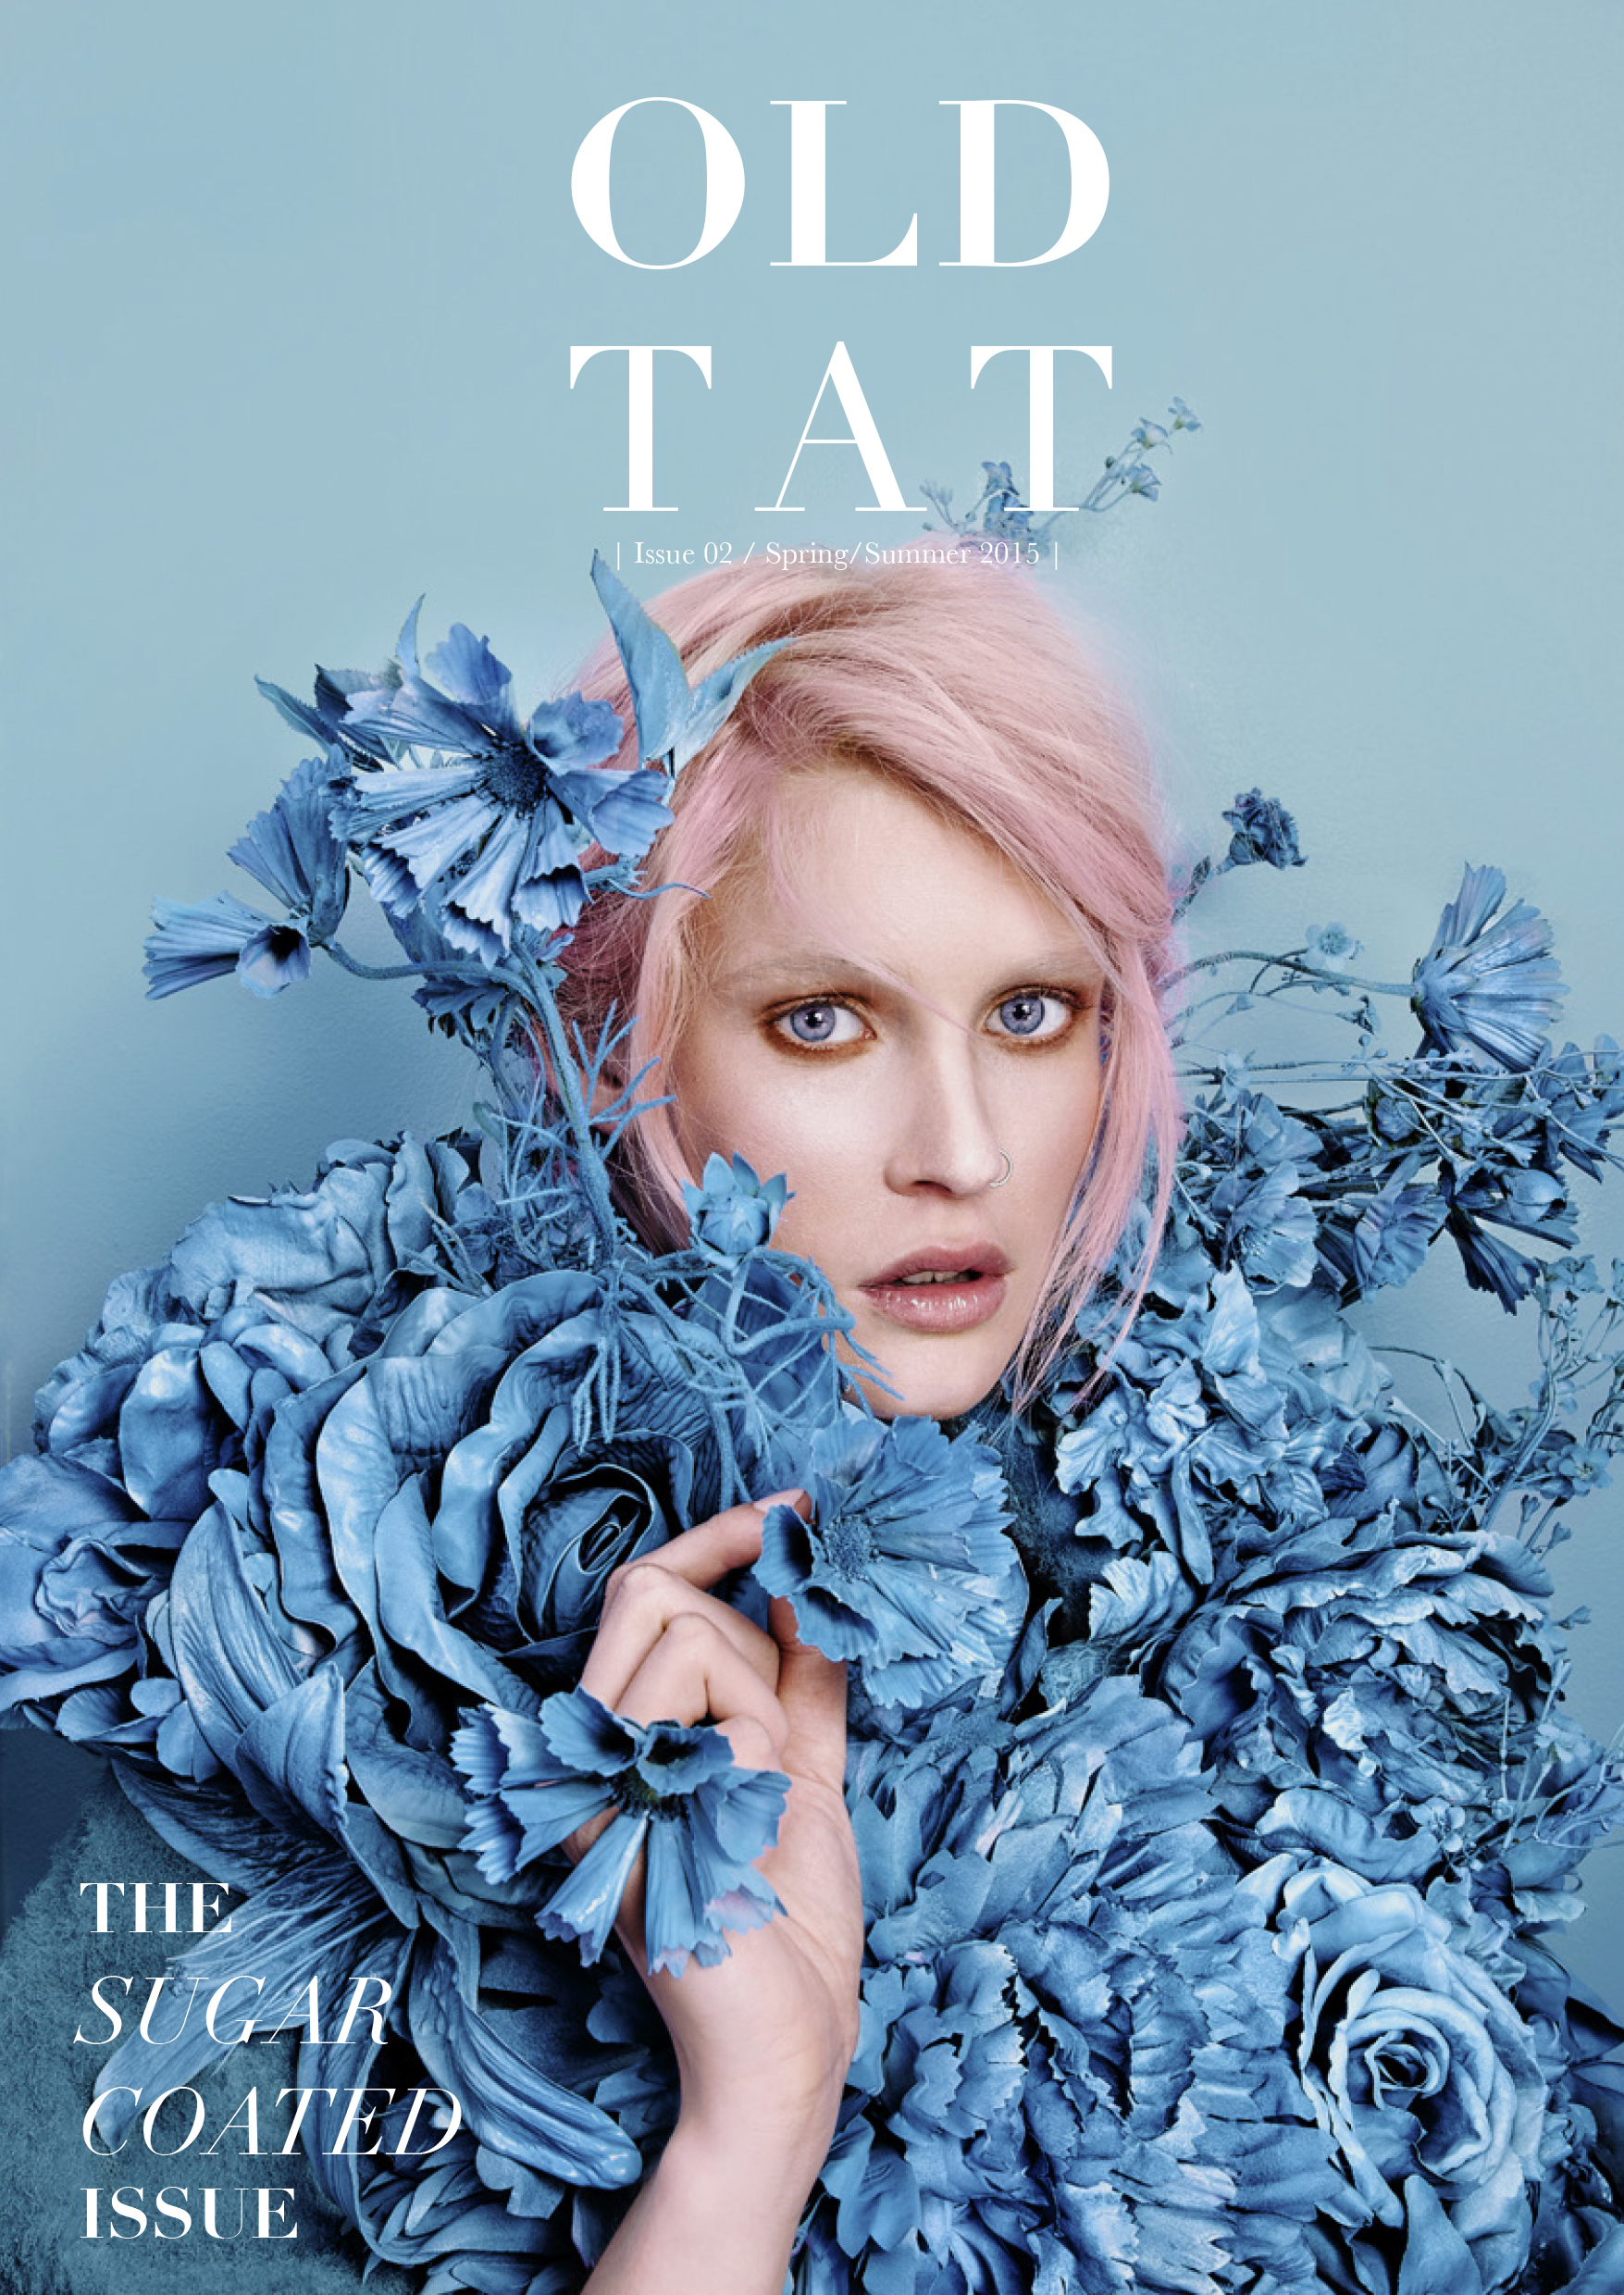 OLD TAT - Cover story SS15